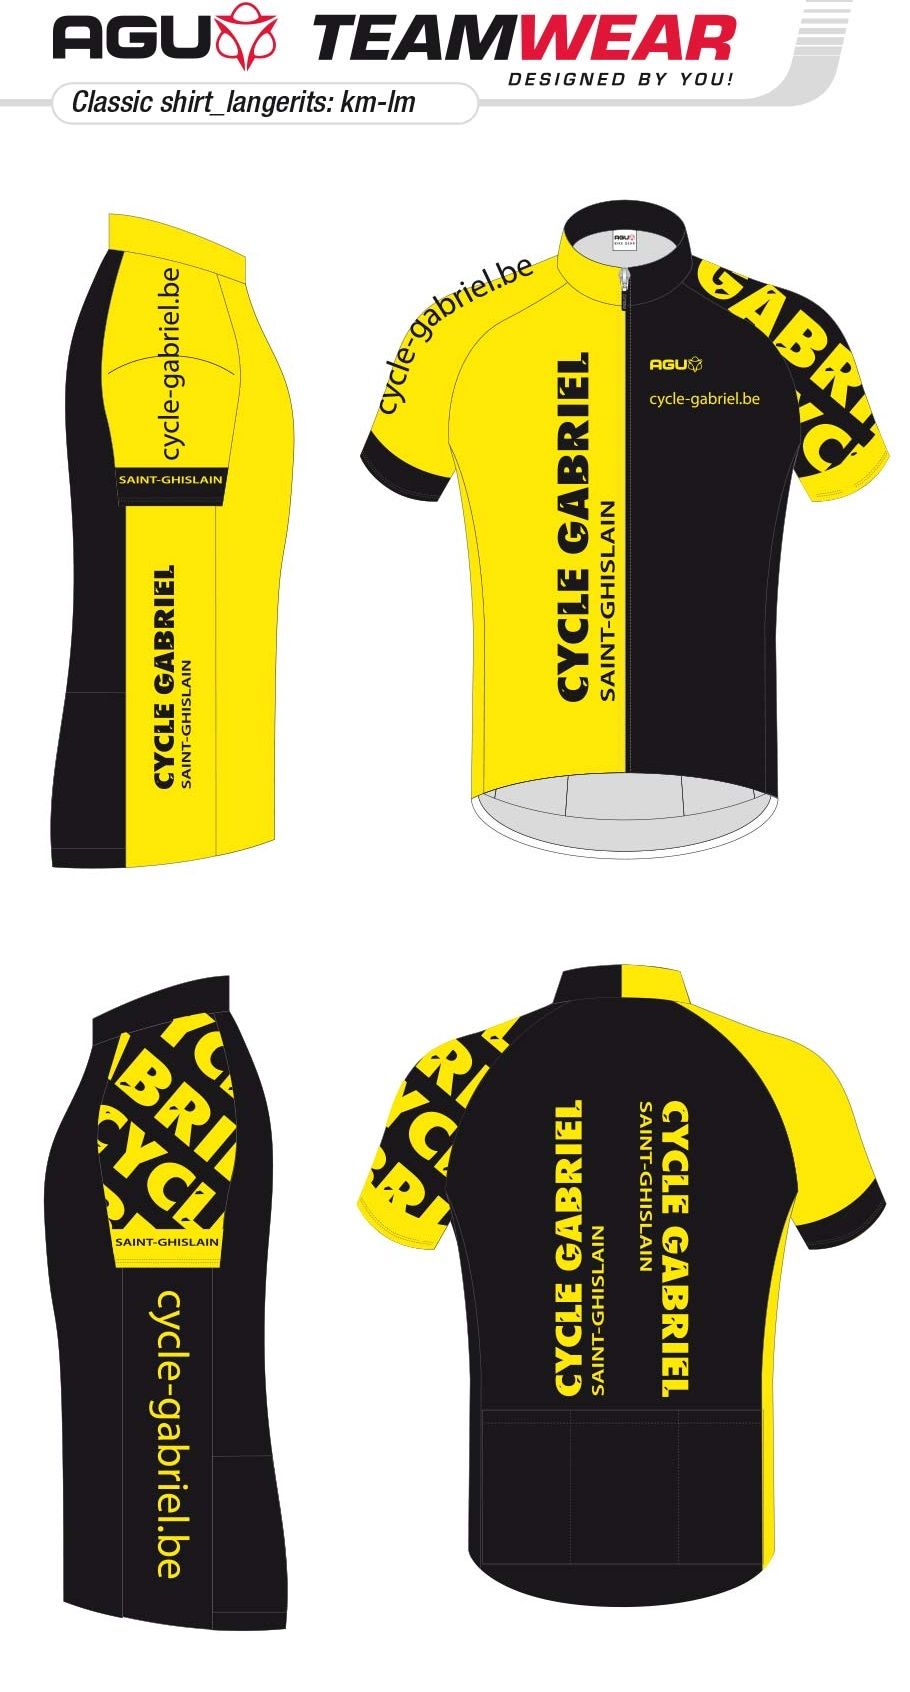 Cycling shirt design your own - Design Your Own Cycling Jersey By Agu Customized Cycling Apparel Designed For Cycle